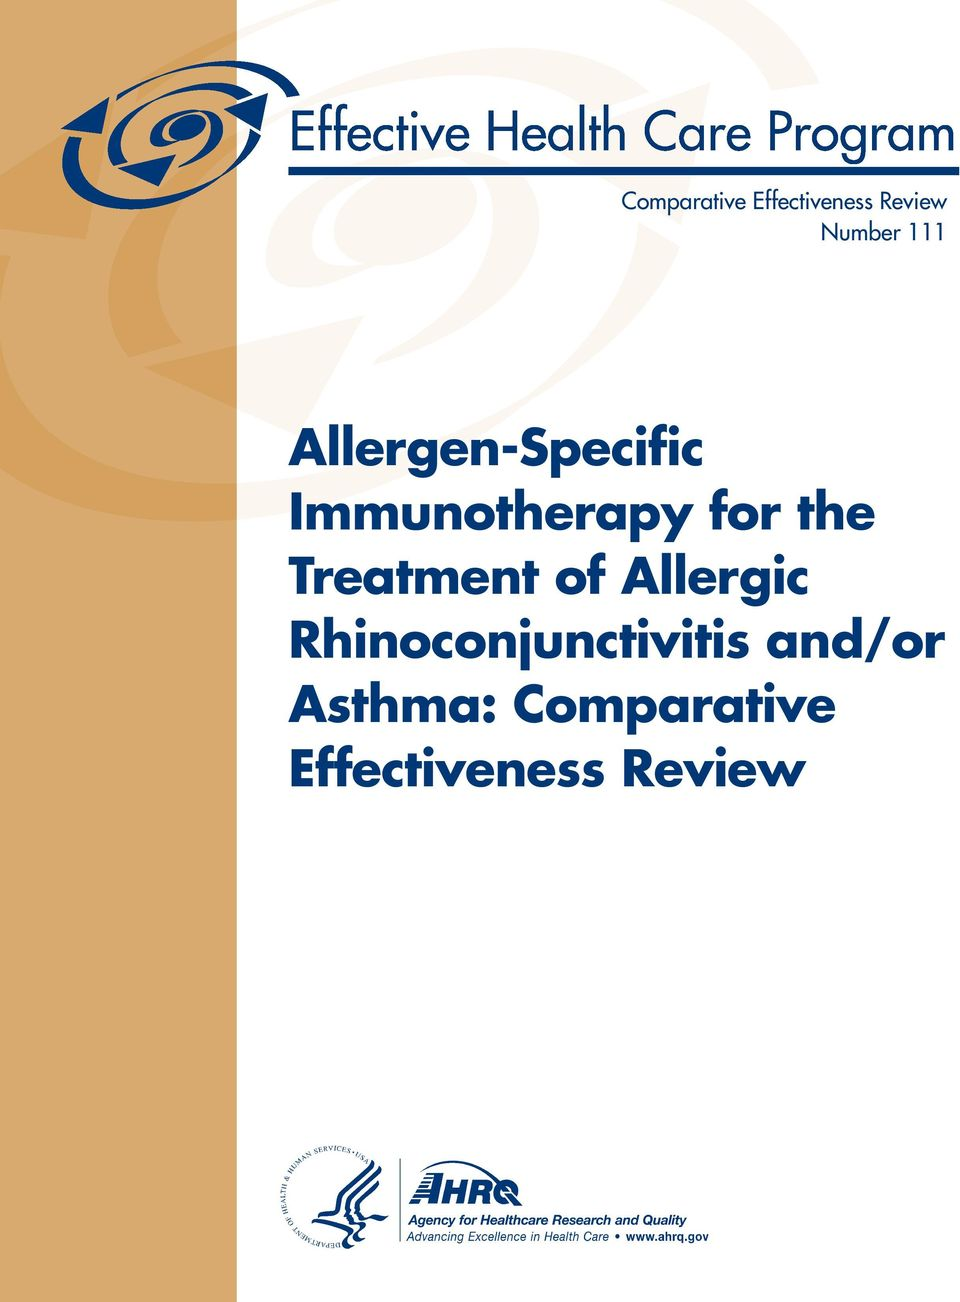 Treatment of Allergic Rhinoconjunctivitis